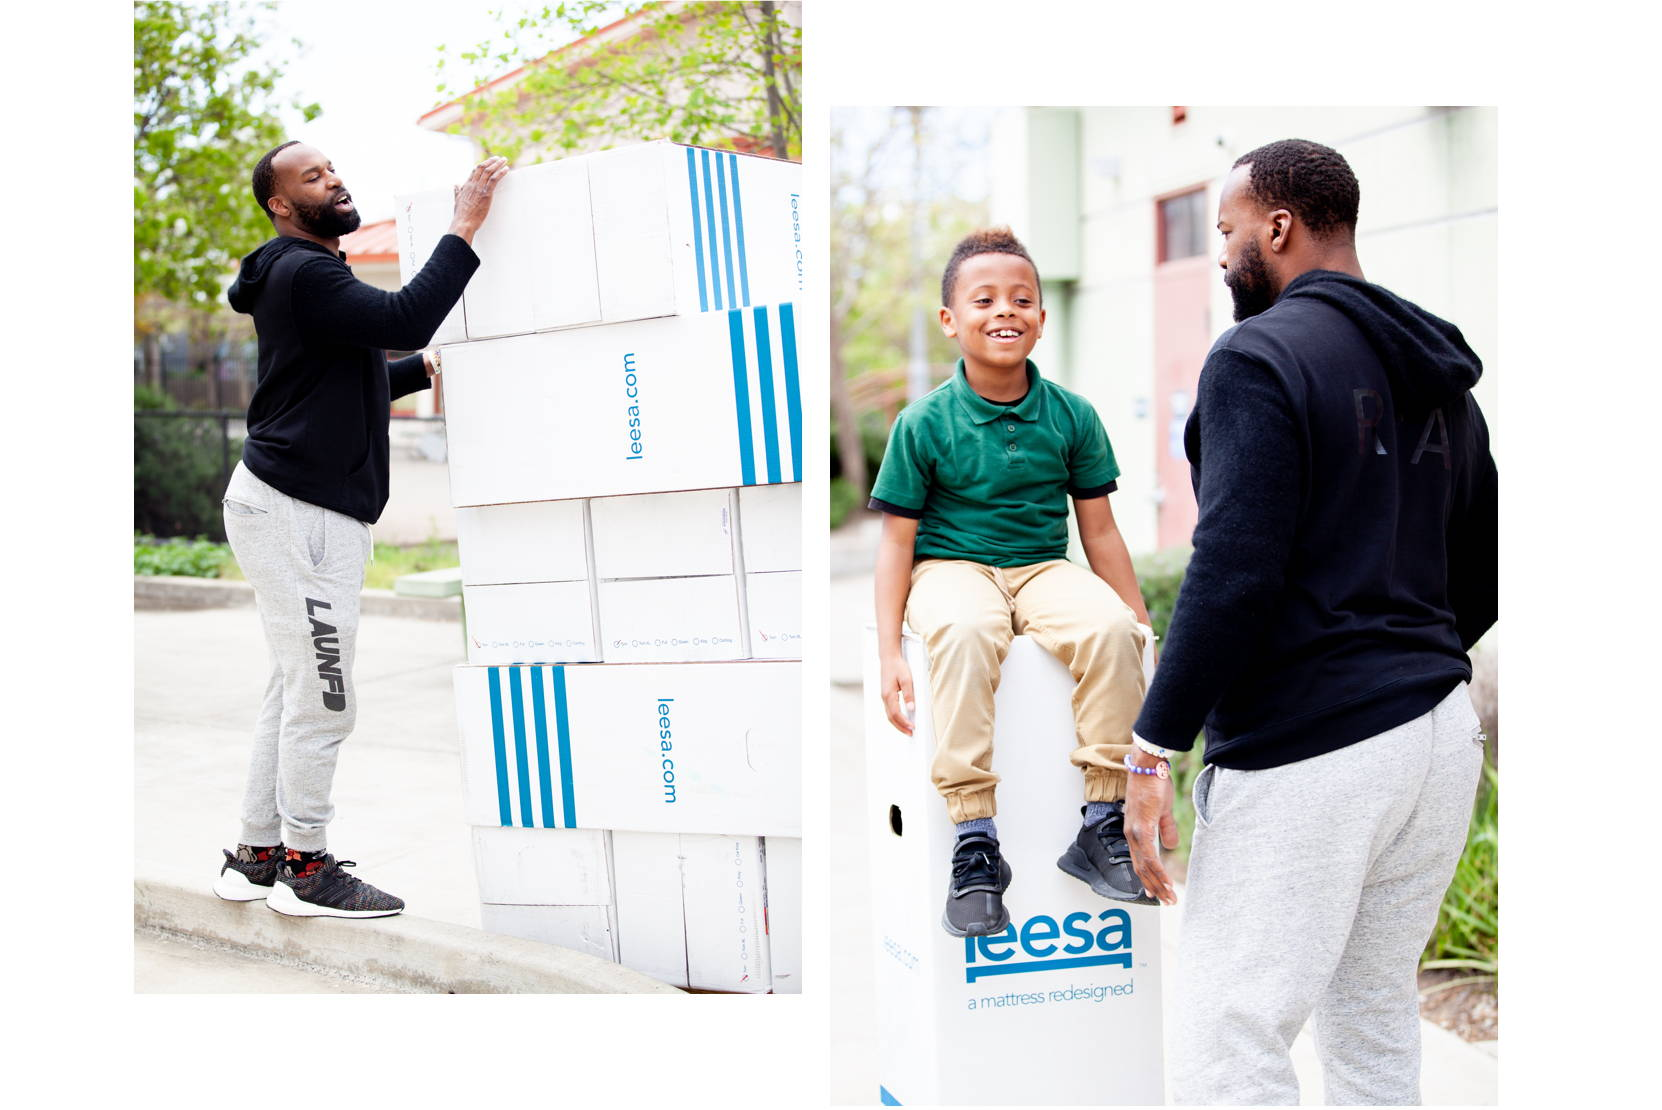 Former NBA player Baron Davis volunteering with Leesa on a mattress delivery for kids in need